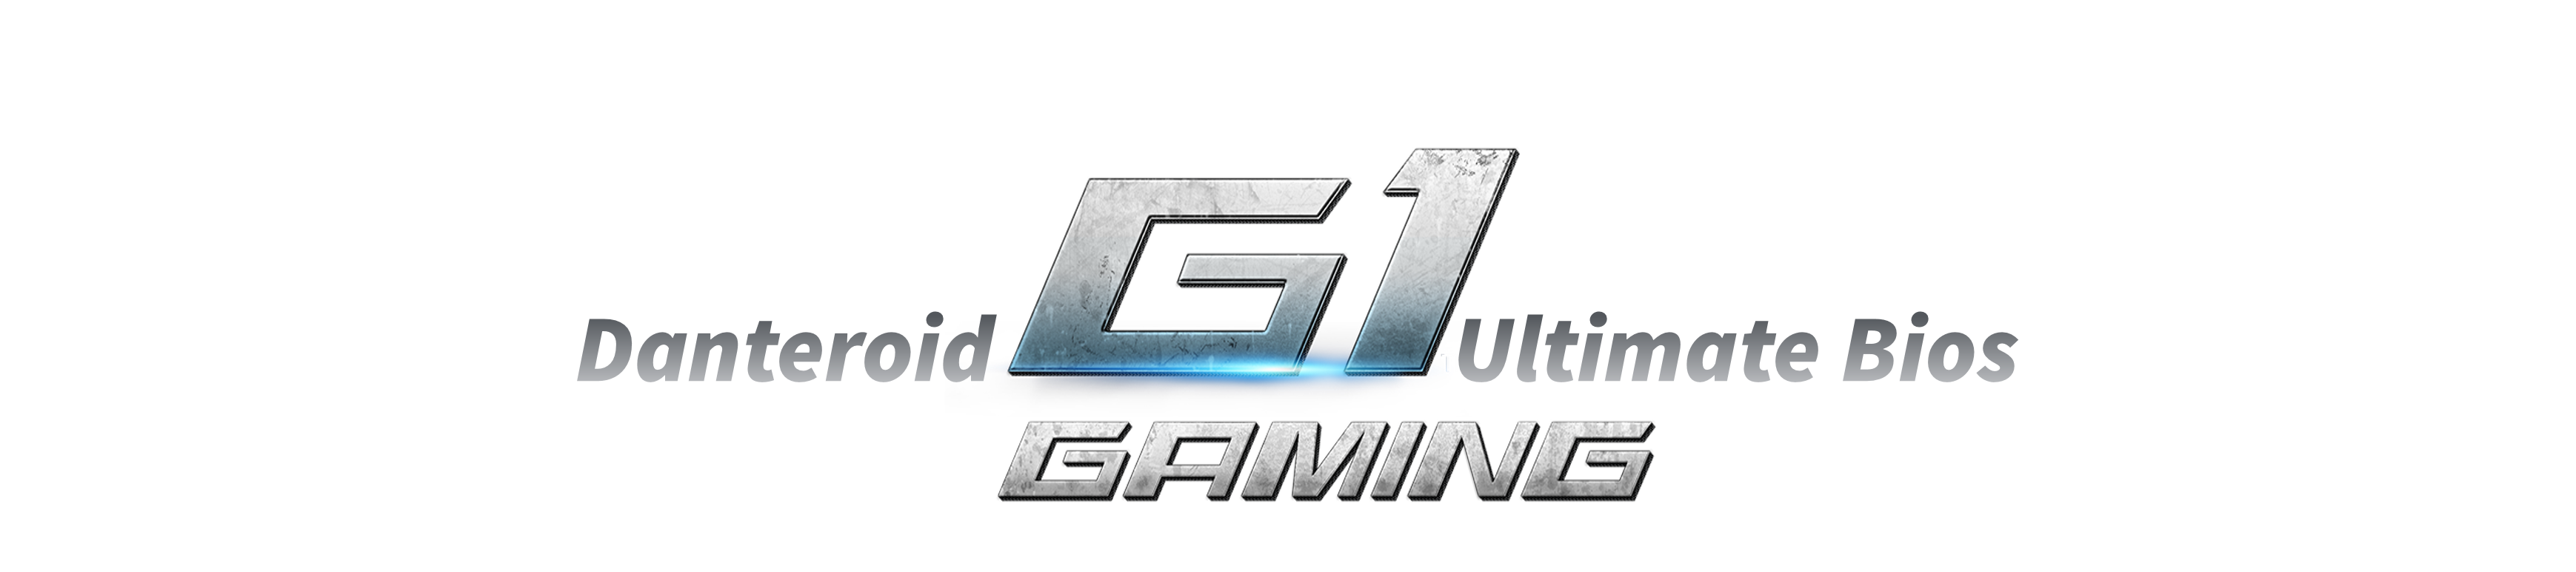 Gigabyte GTX 980Ti Gaming G1 Ultimate OC Bios ( All Bugs Fixed ) New